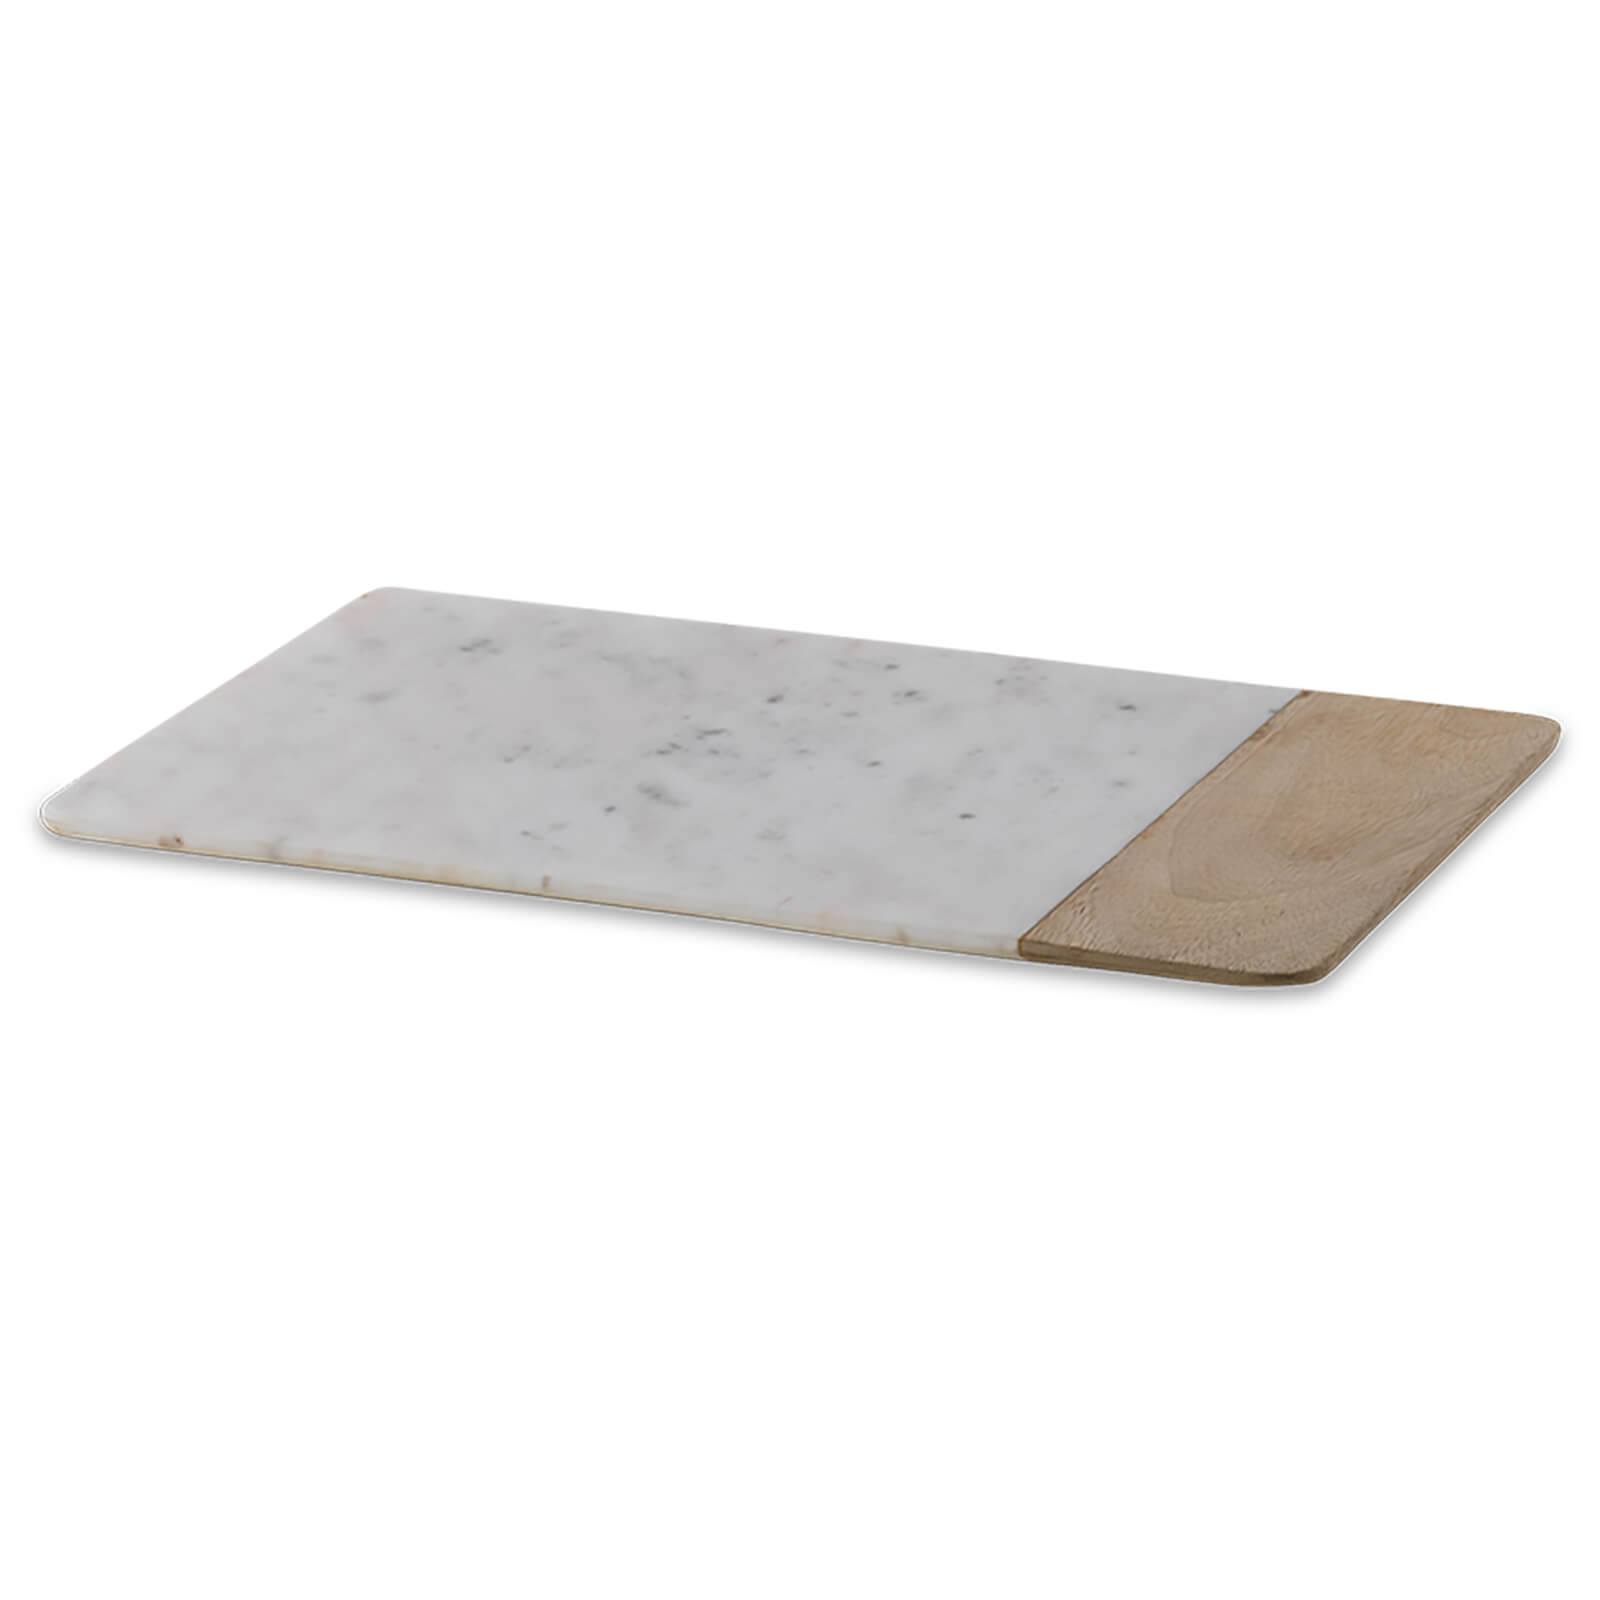 Nkuku Bwari Long Marble and Mango Wood Chopping Board - Large - White